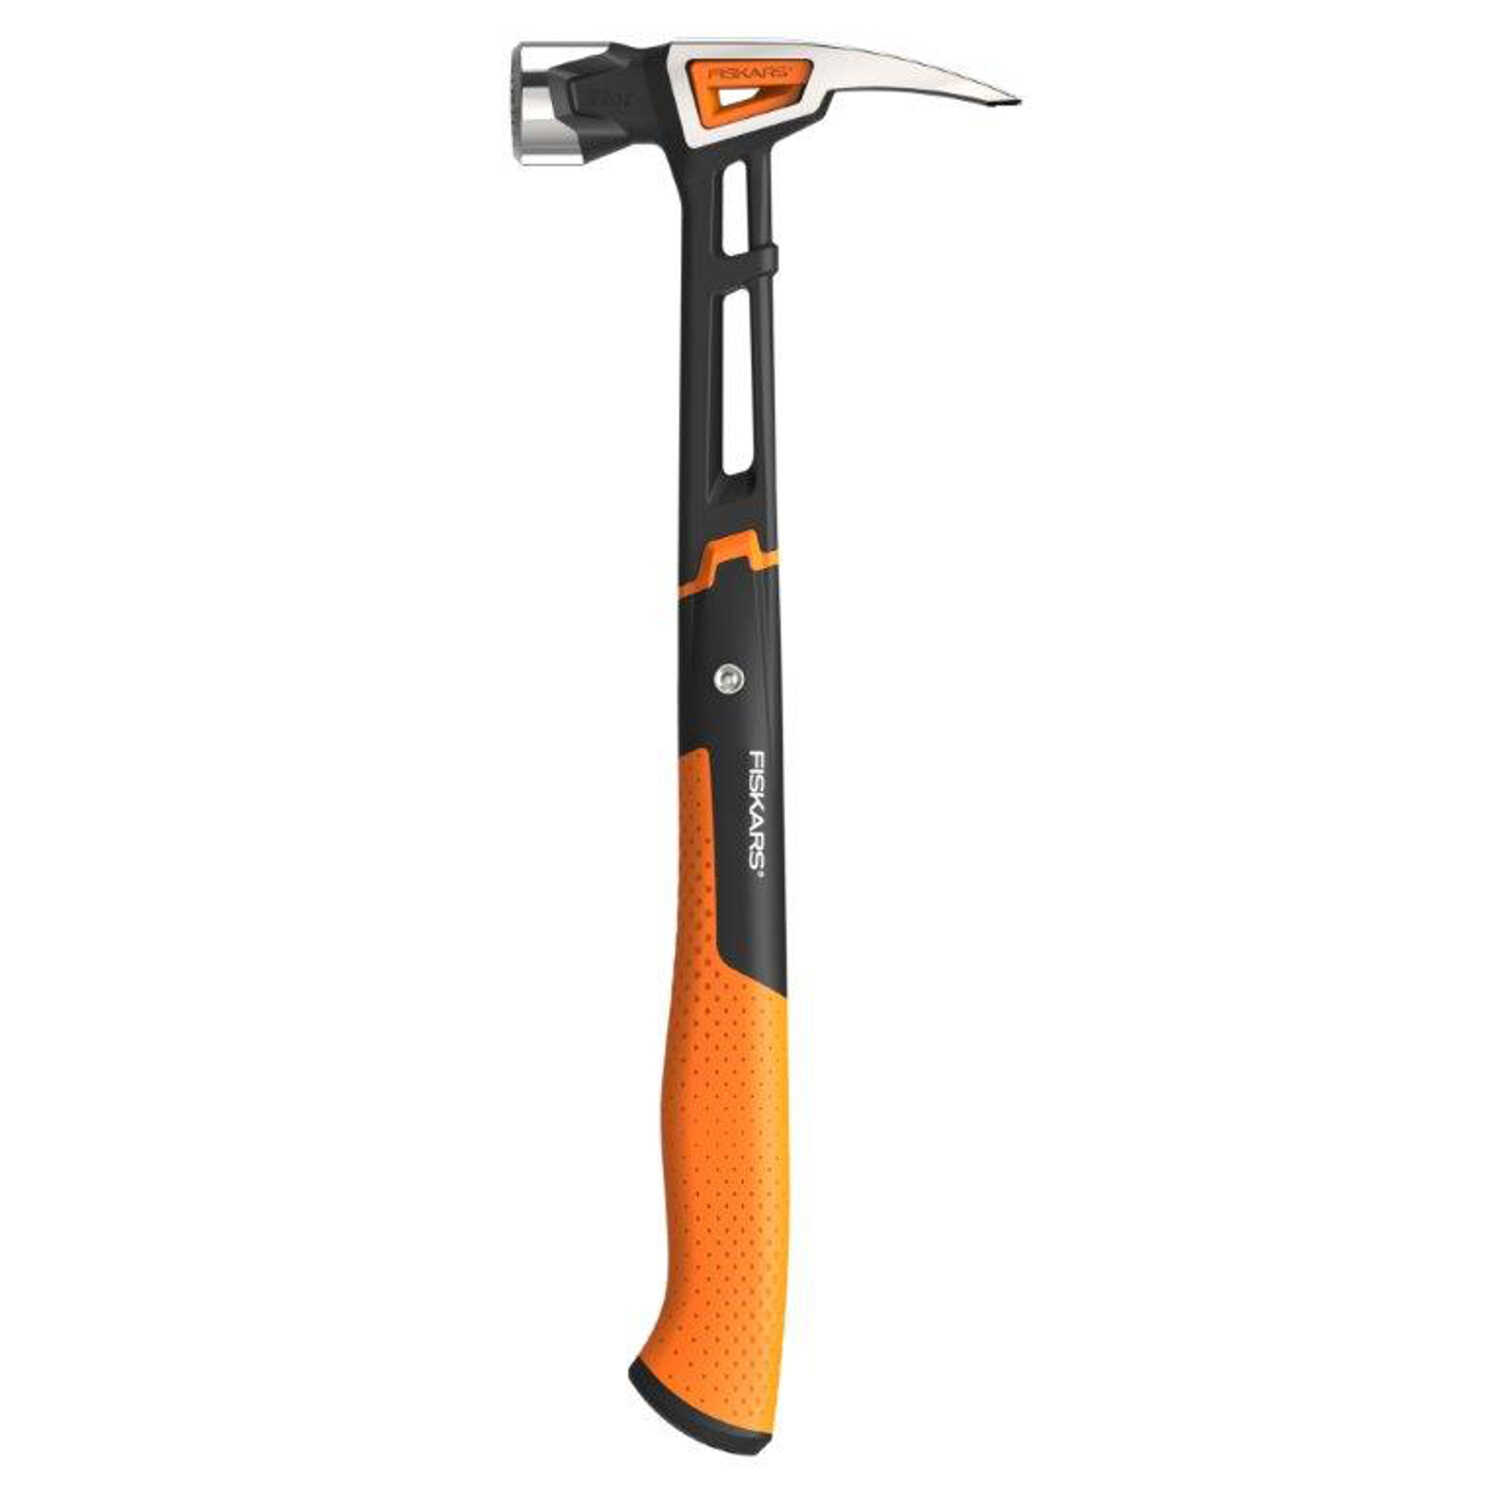 Fiskars  IsoCore  22 oz. Framing Hammer  Steel Handle  15-1/2 in. L